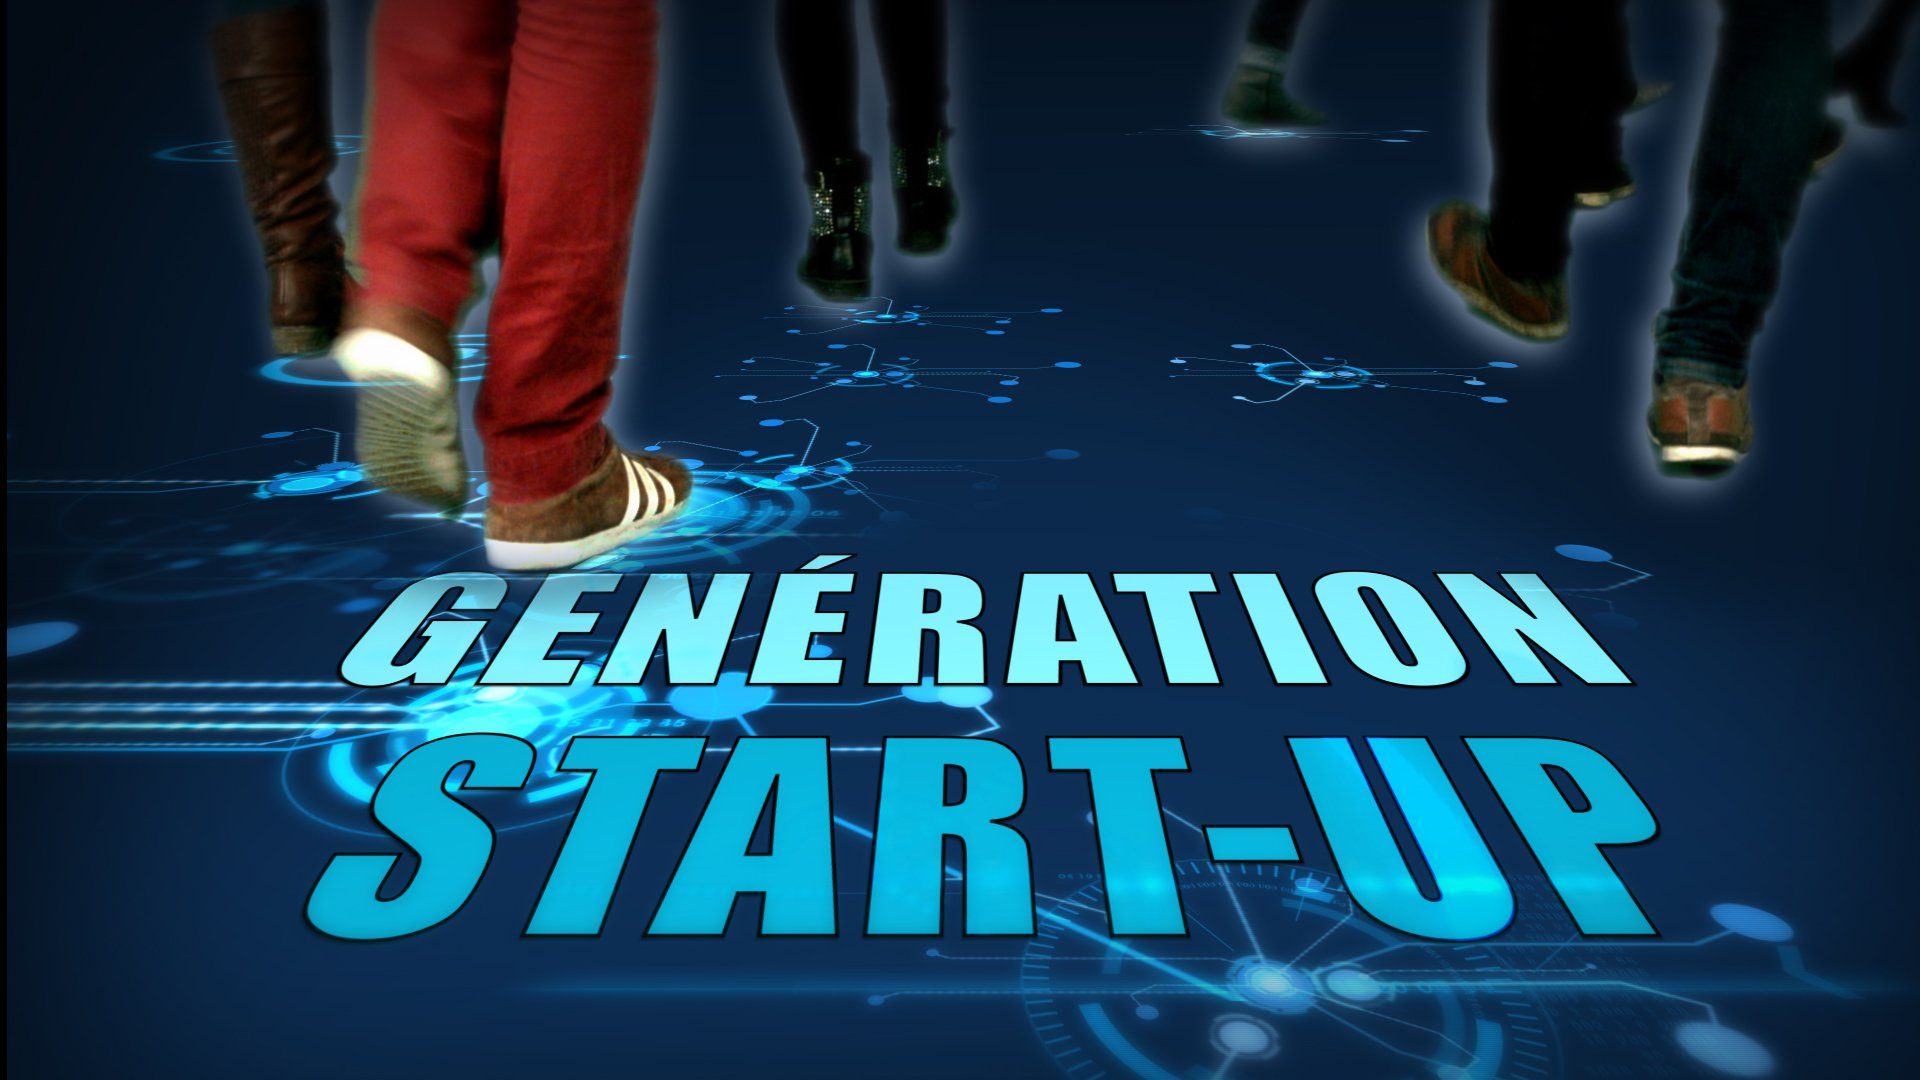 Génération start-up